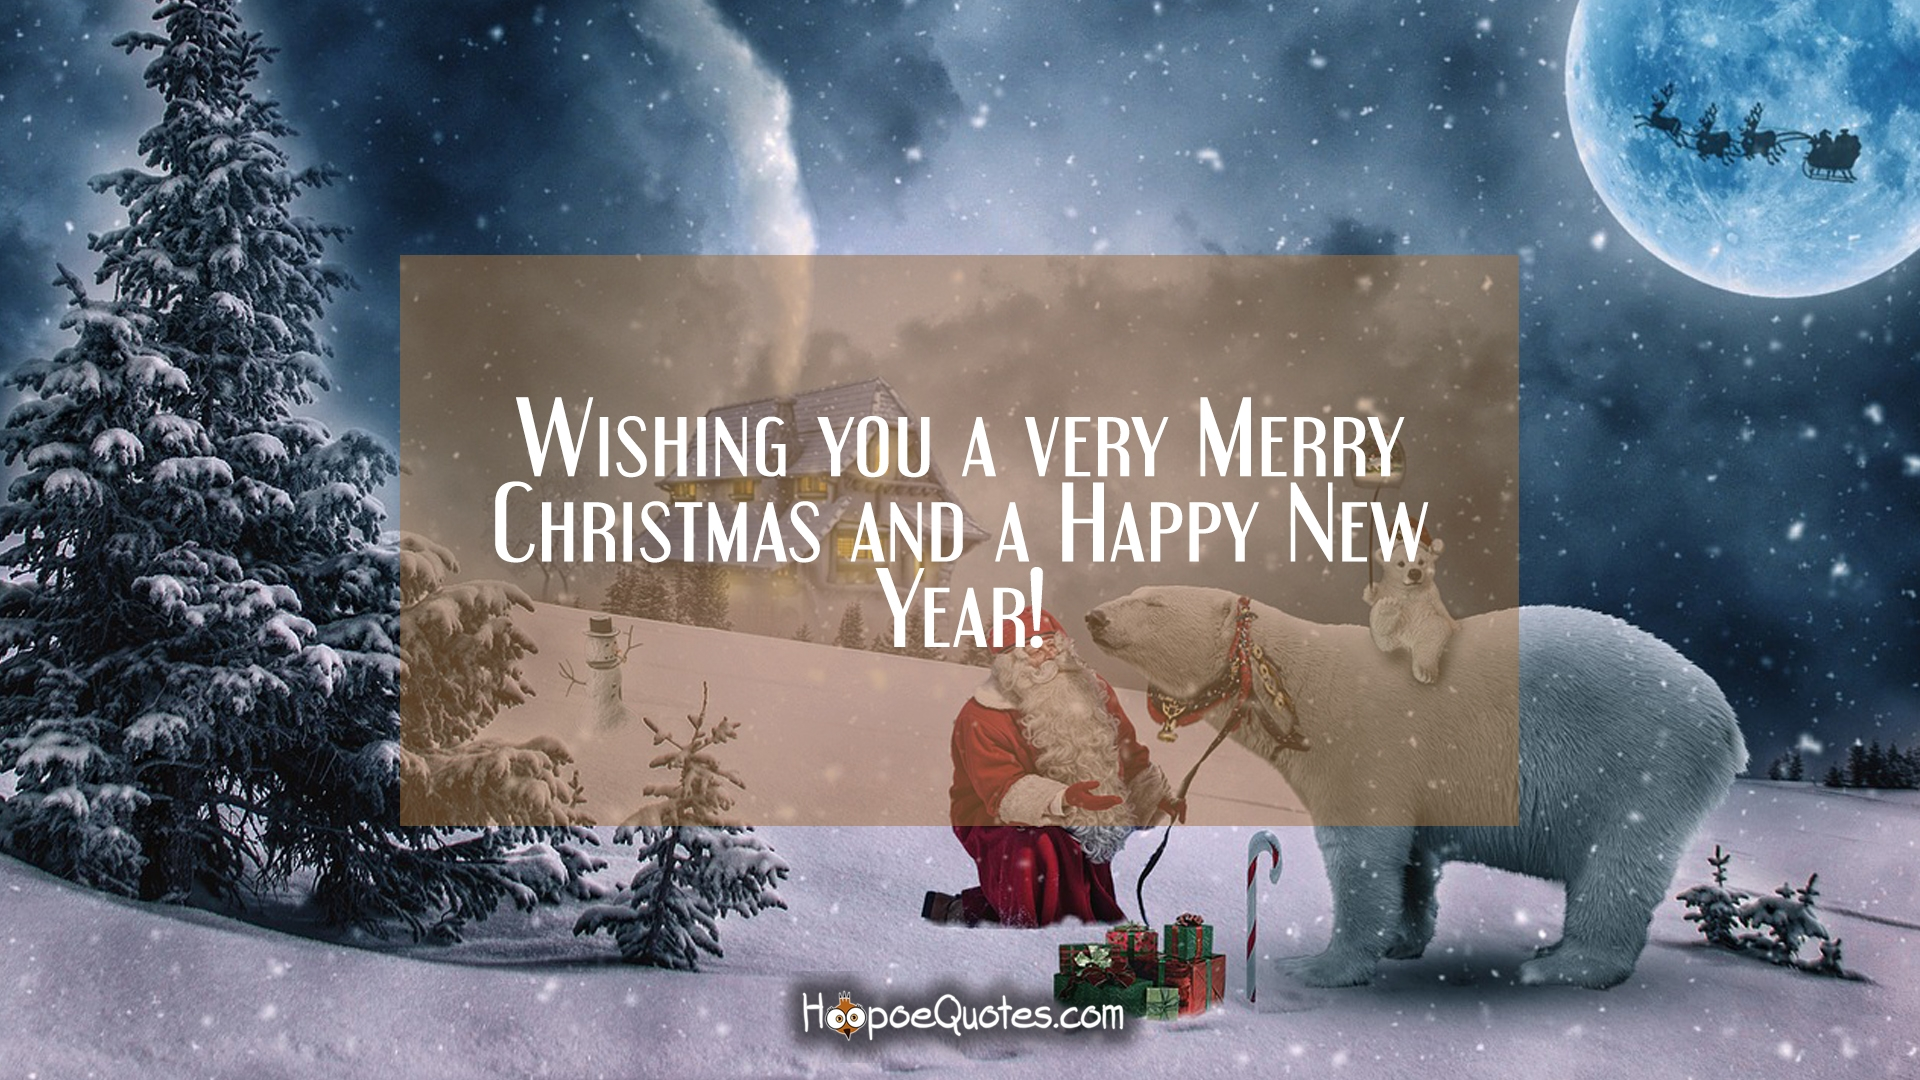 Christmas Year You Merry Family Your And New Happy Quotes And Wishing